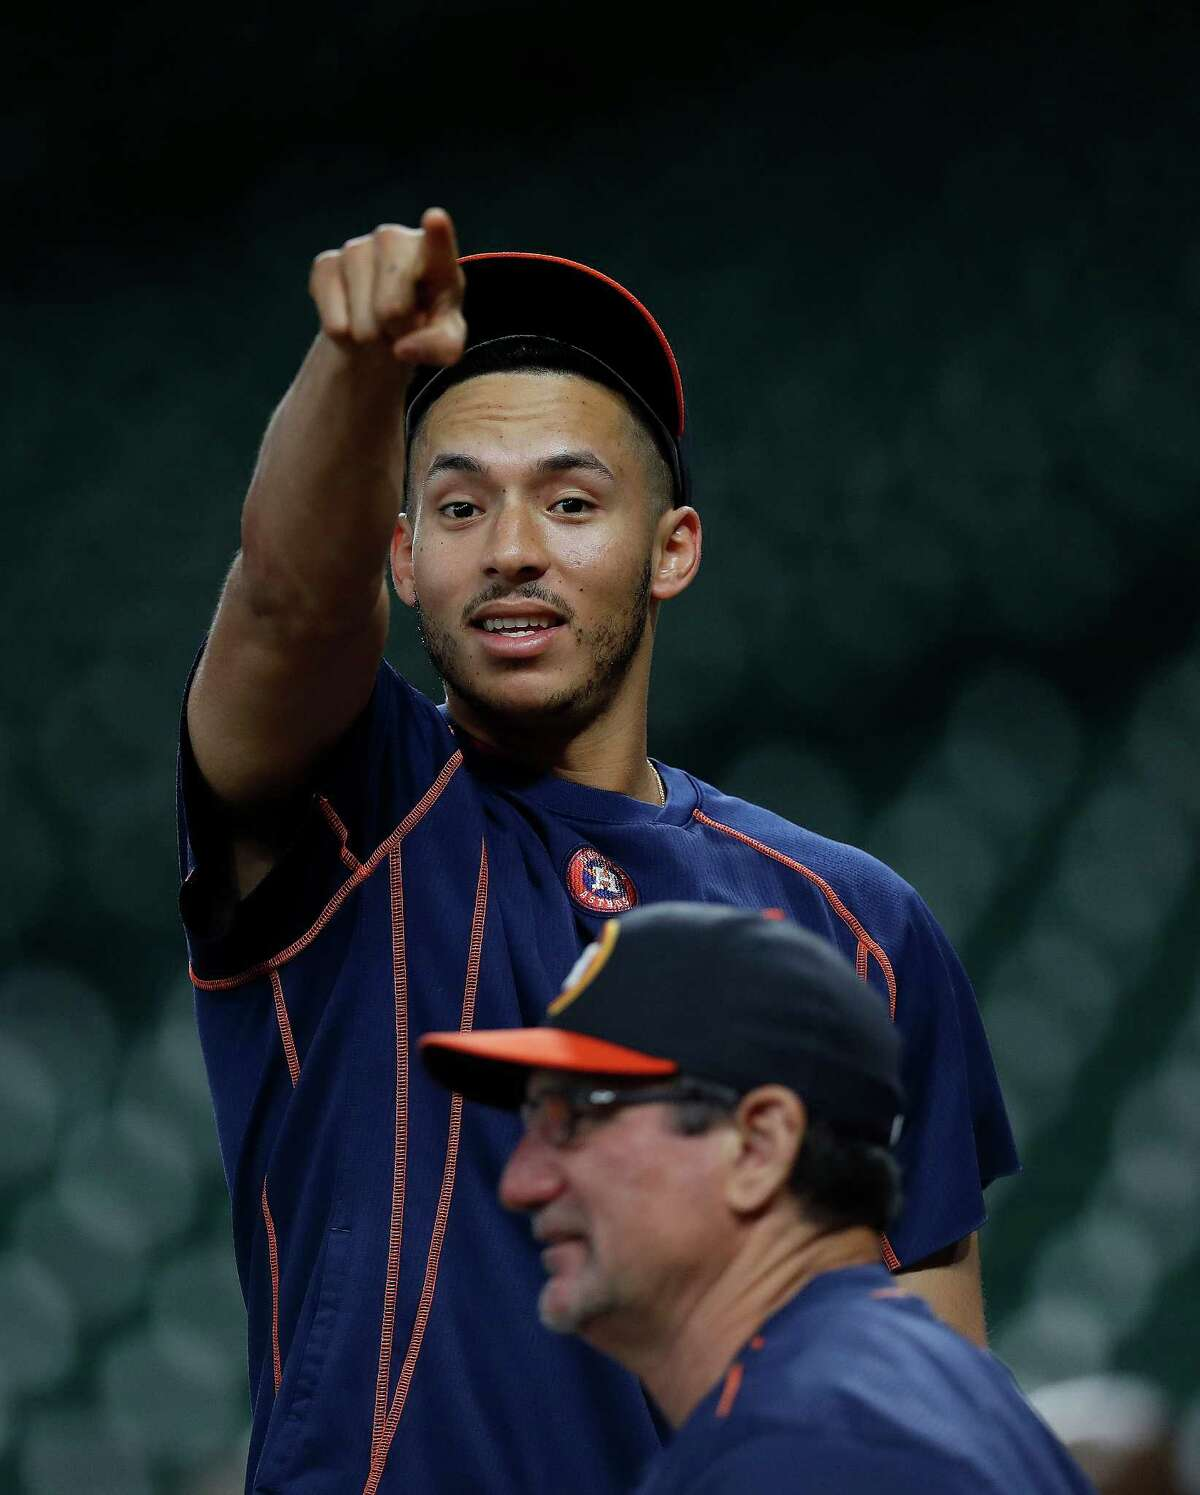 Houston Astros shortstop Carlos Correa smiles as he sees someone he knows during batting practice before the start of an MLB game at Minute Maid Park, Monday, Sept. 26, 2016 in Houston.